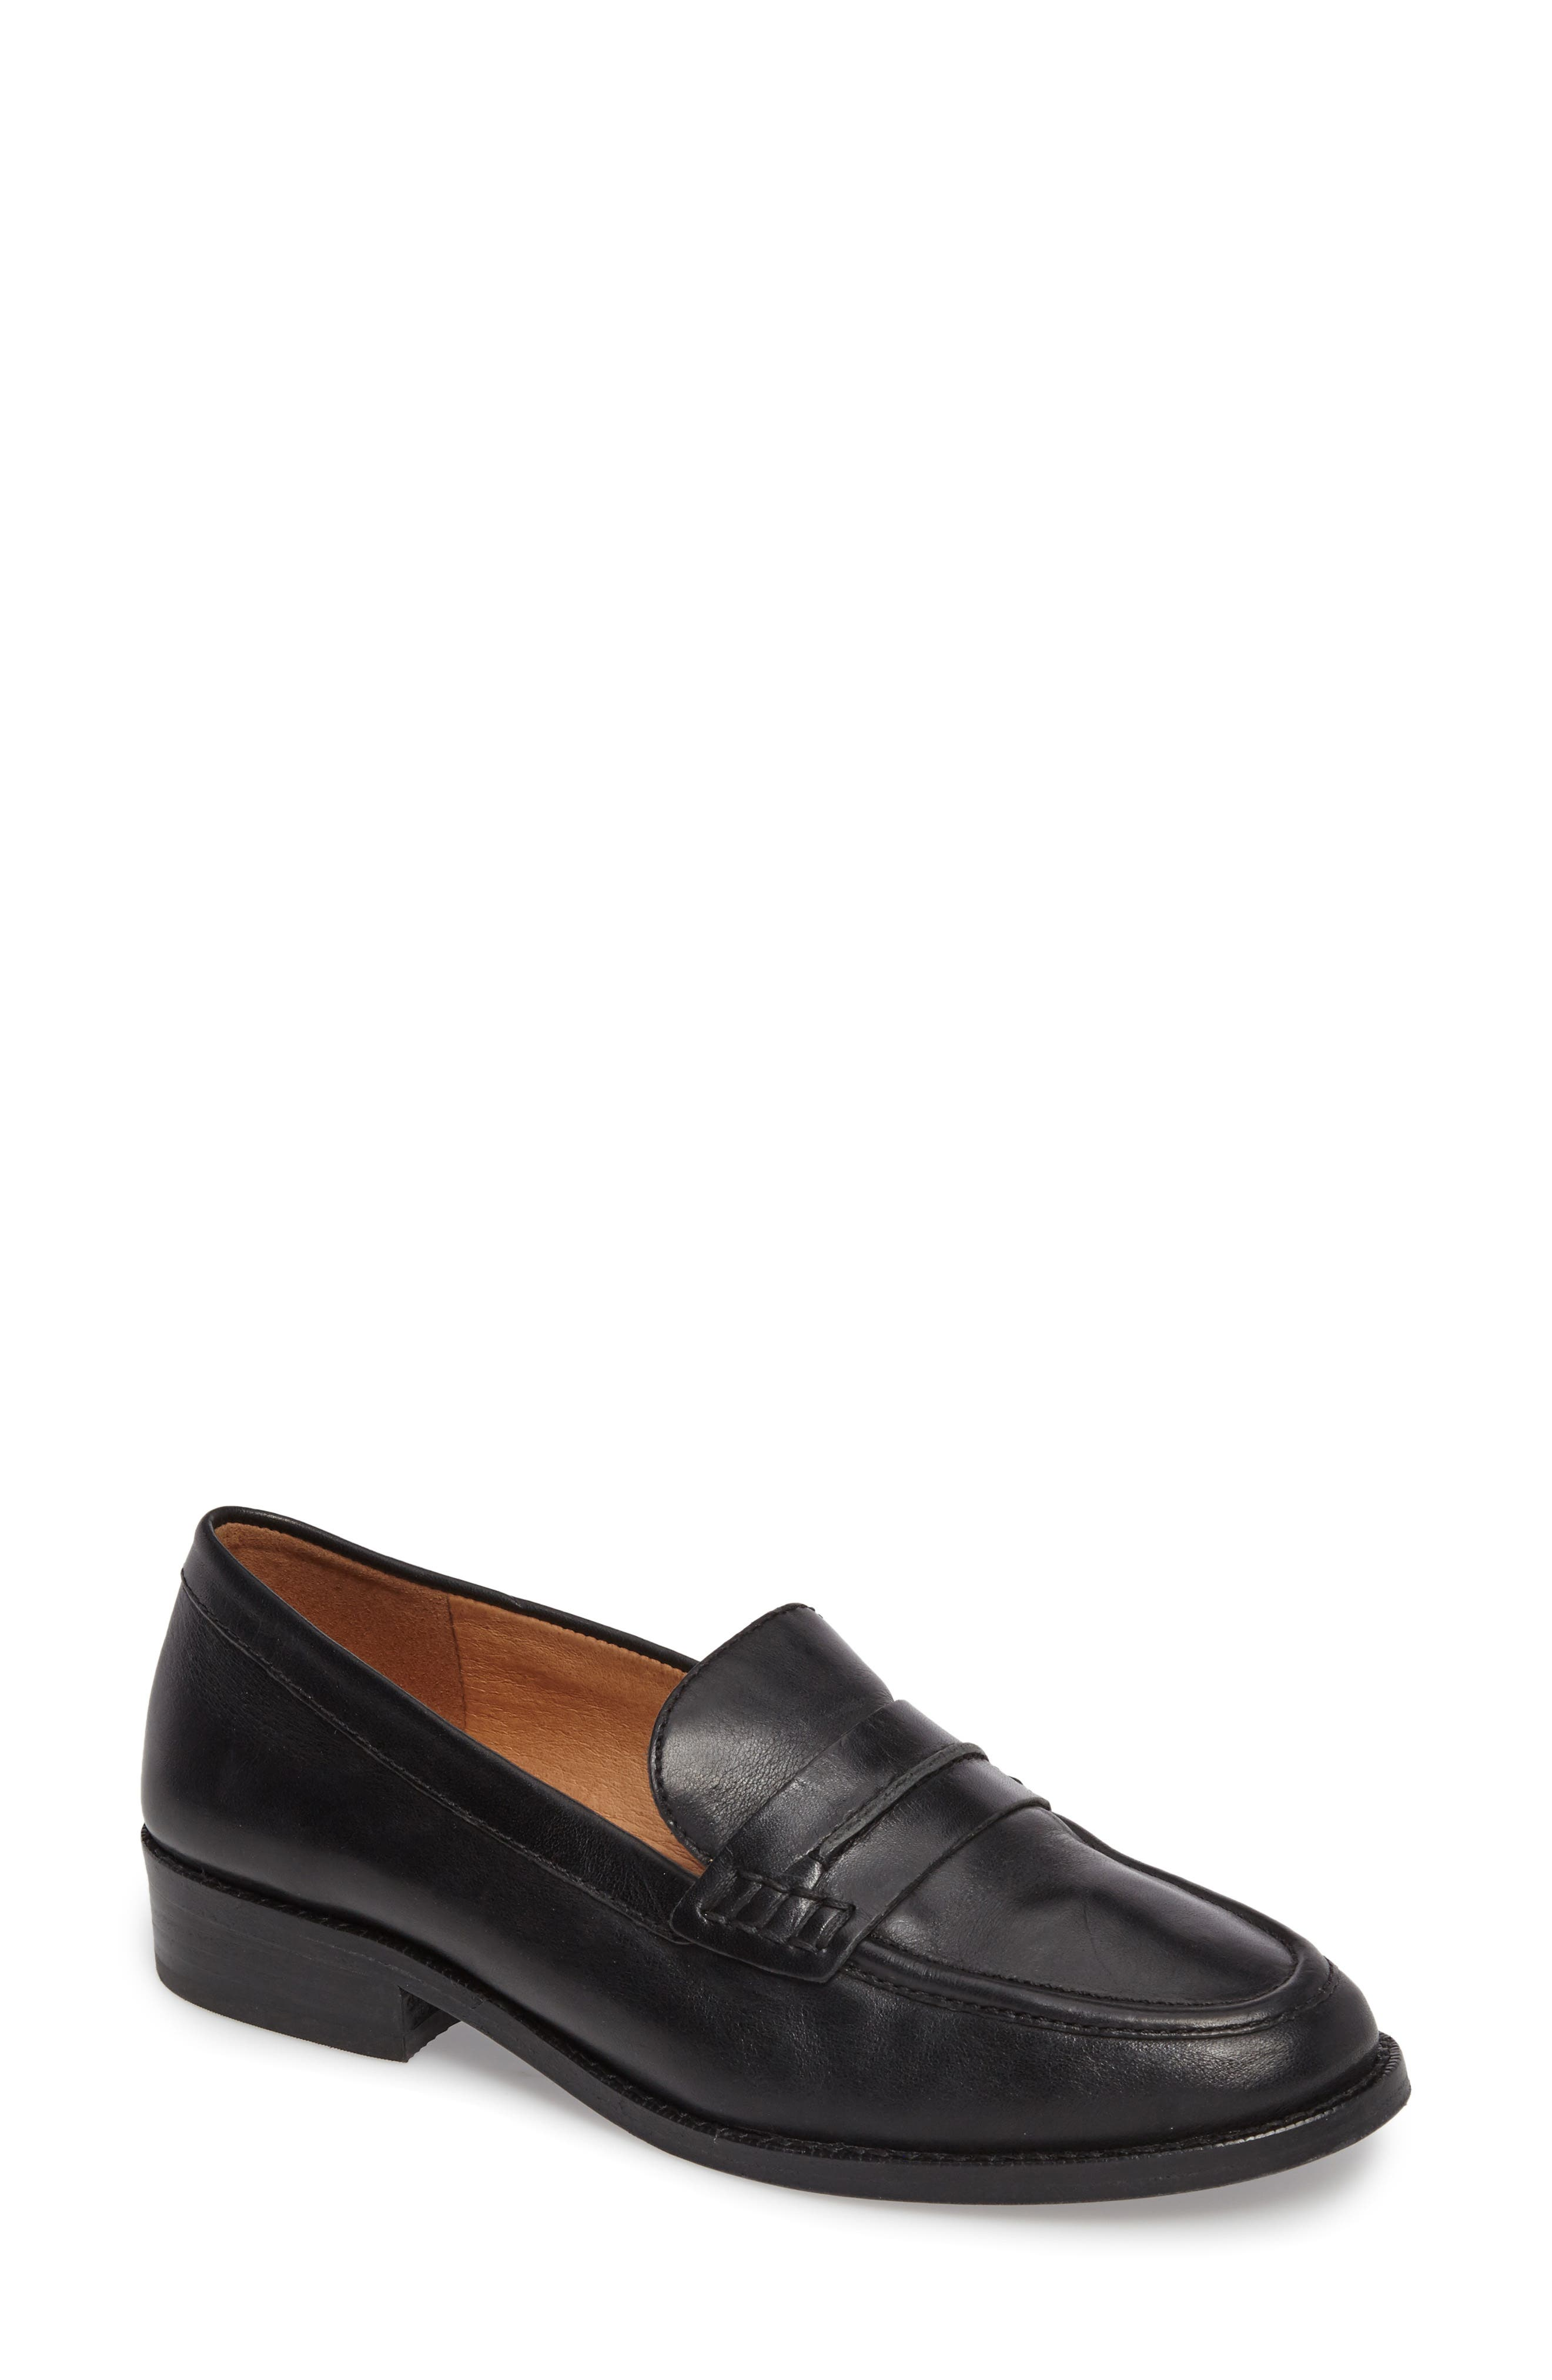 MADEWELL, The Elinor Loafer, Main thumbnail 1, color, 001